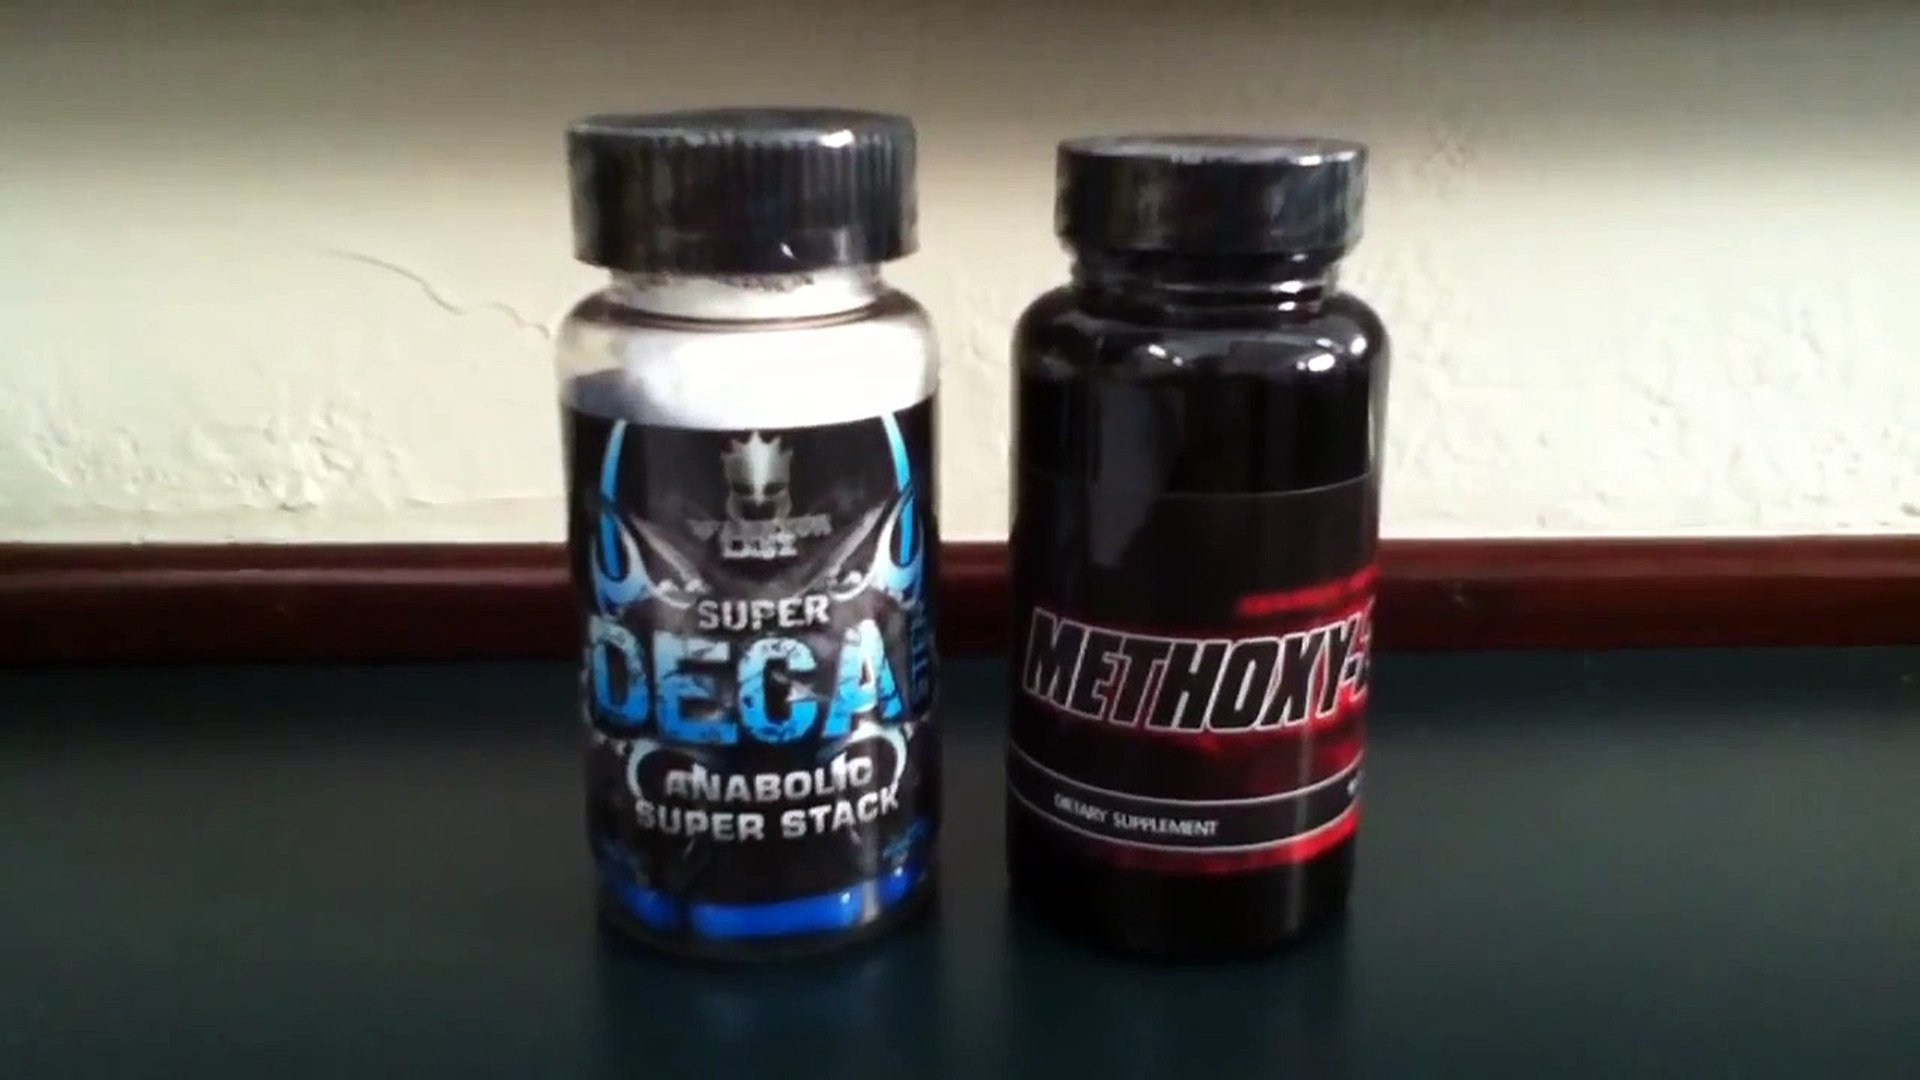 The BEST Bulking Prohormone Stack on the market!!